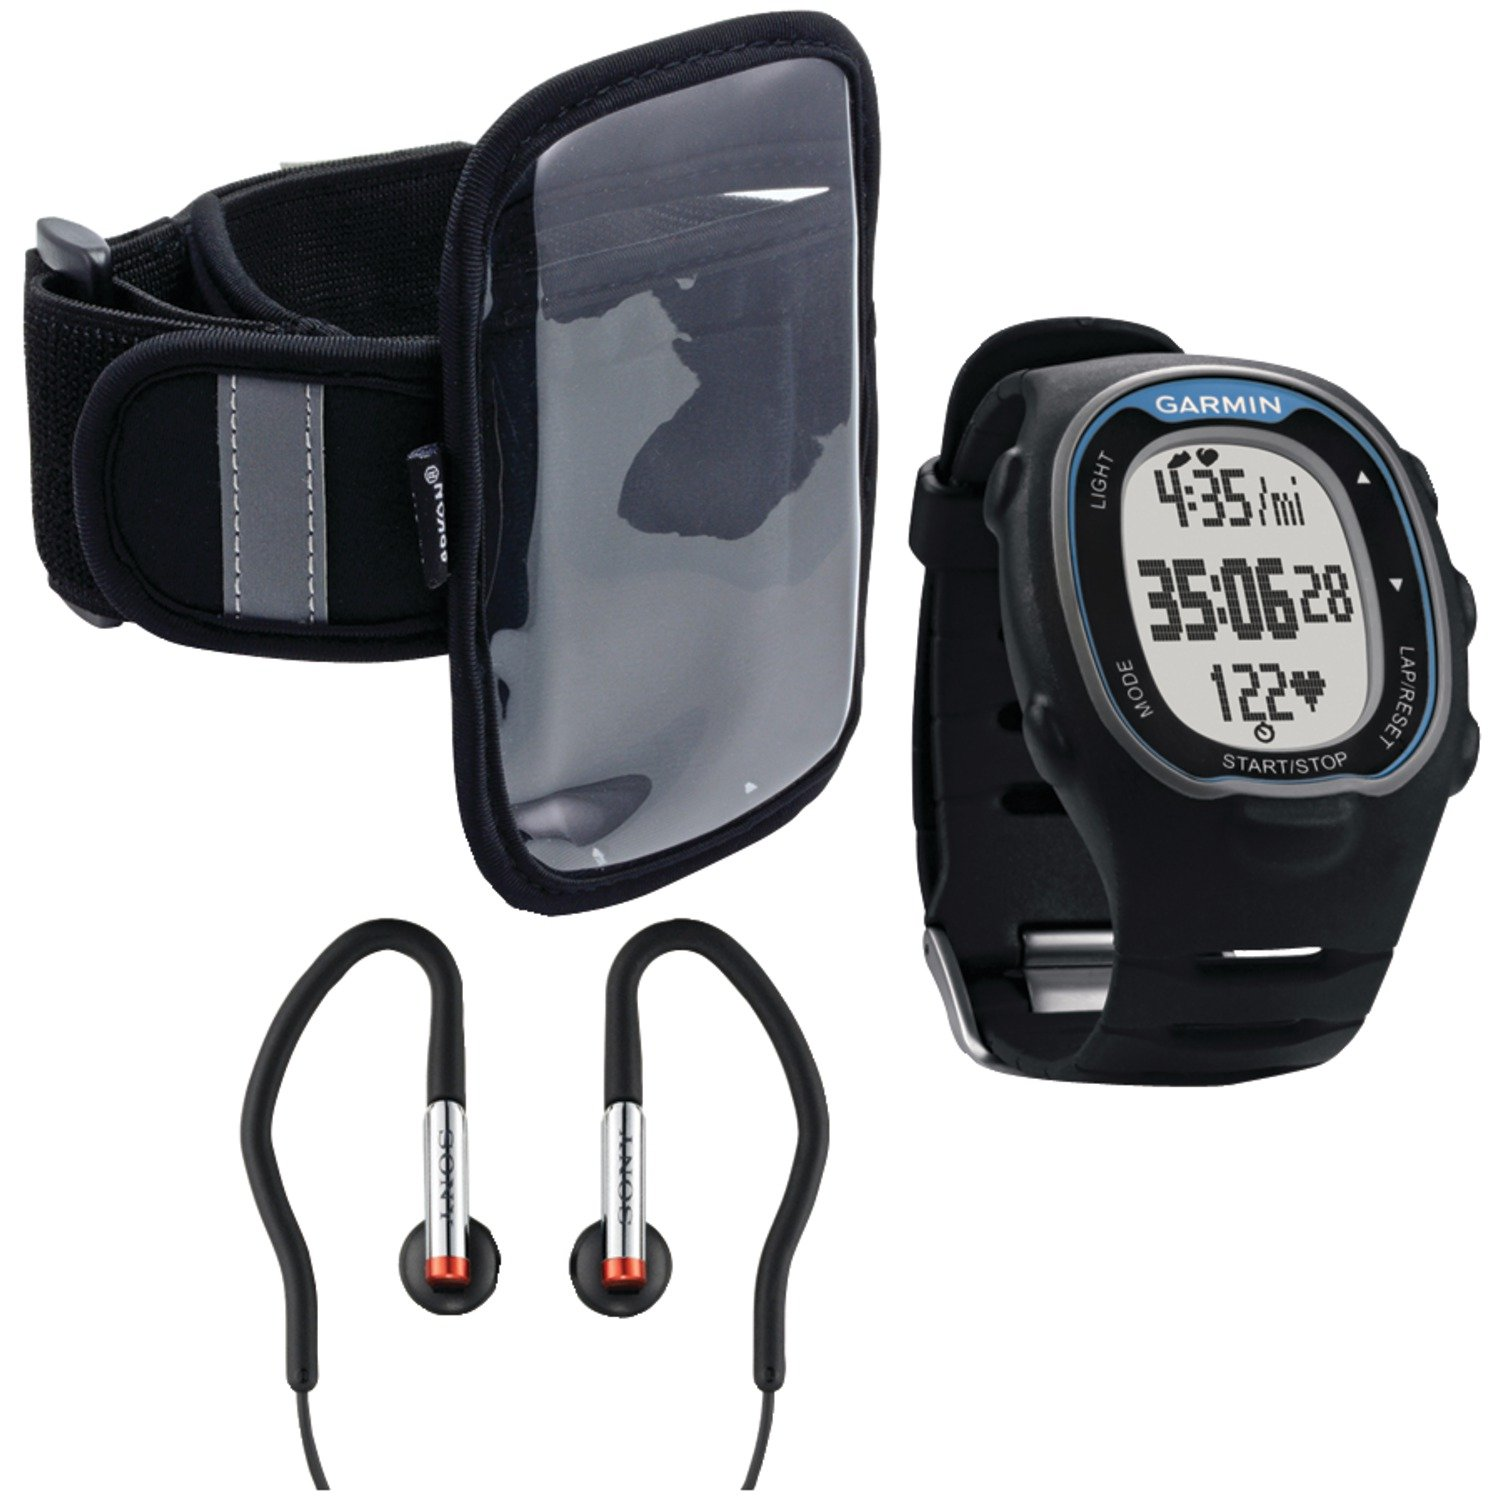 Garmin  010-00743-70 Forerunner 70 with Arkon XL-ARMBAND Sports Armband and Sony MDRAS40EX Sport Earbuds